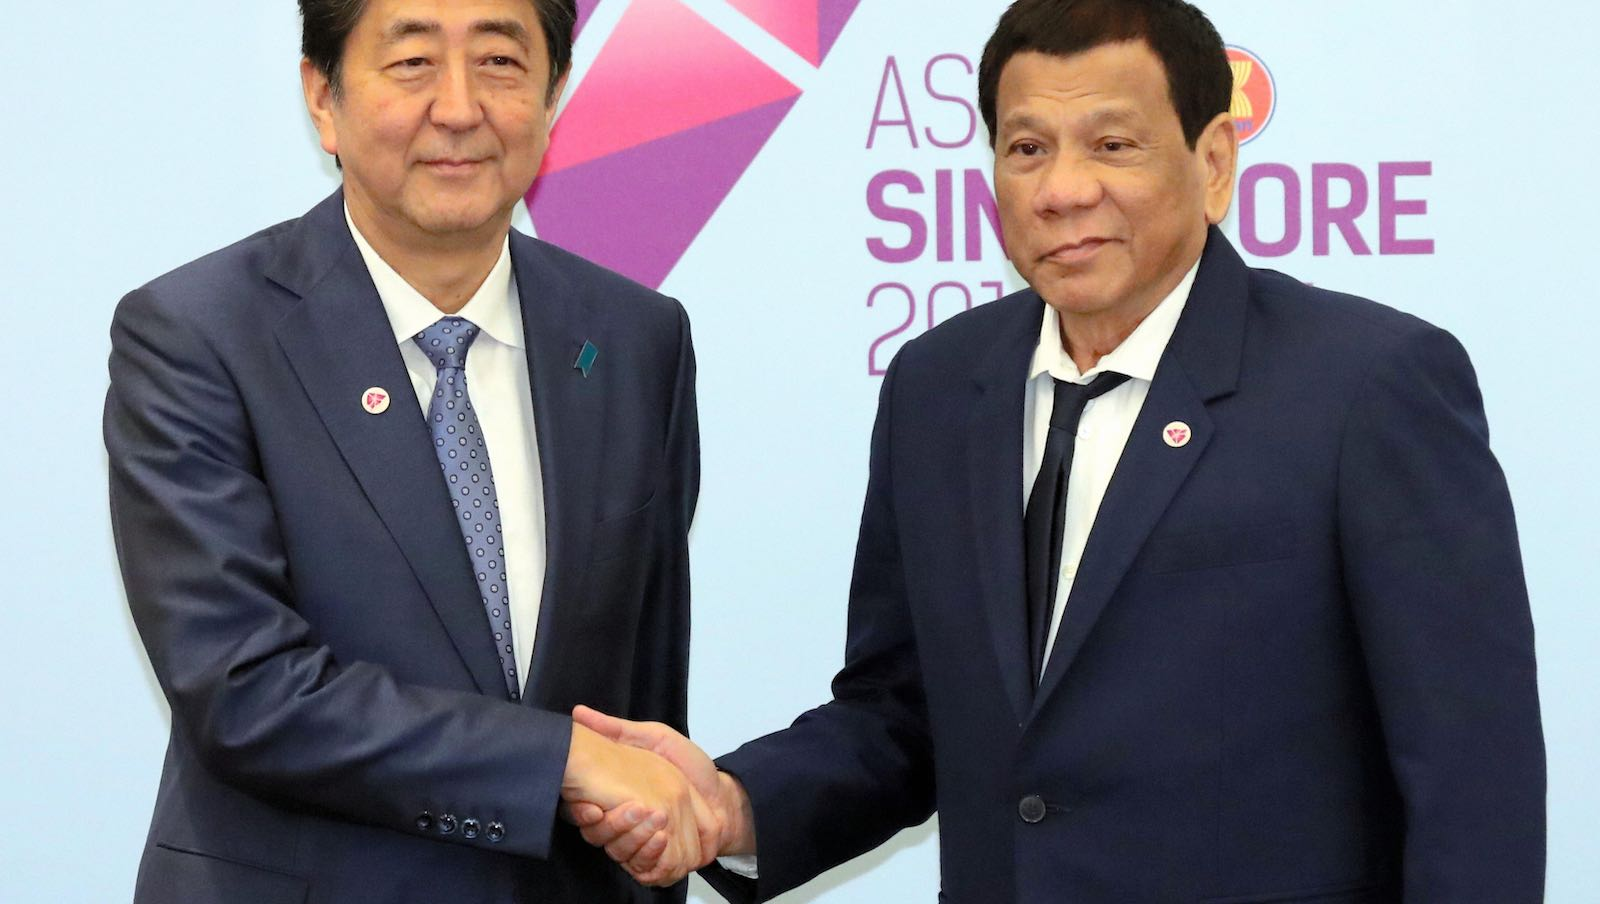 """Closer than brothers"": Japan's Shinzo Abe and Philippine President Rodrigo Duterte in November 2018 (Photo: Asahi Shimbun via Getty)"